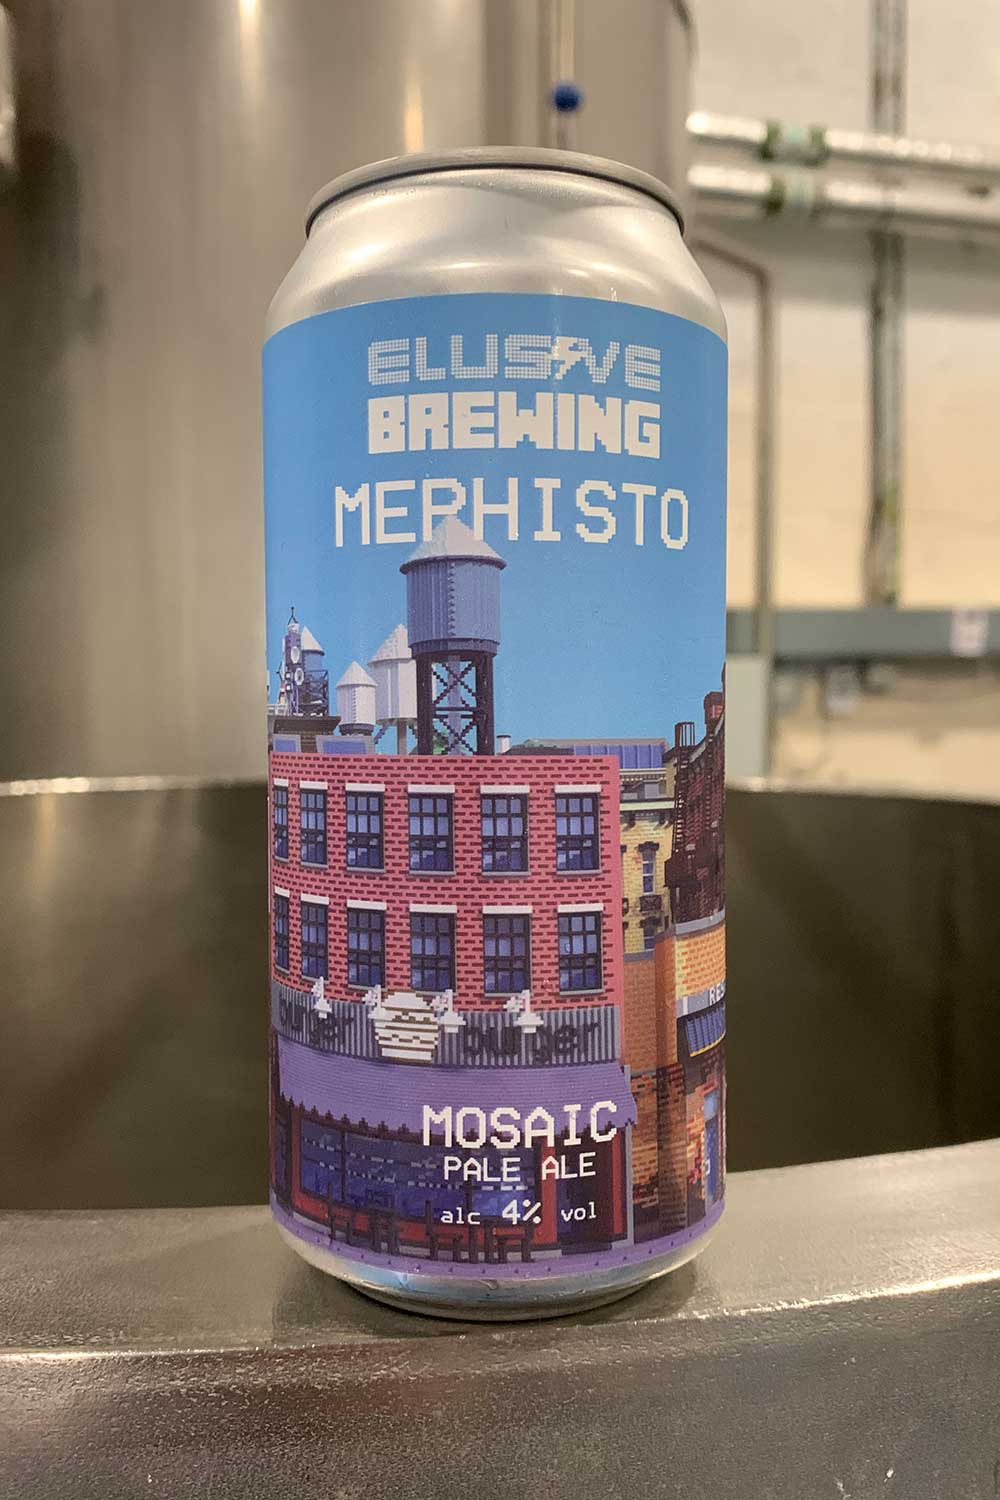 Elusive Brewing Mephisto Mosaic Pale Ale (4.0%), 440ml can